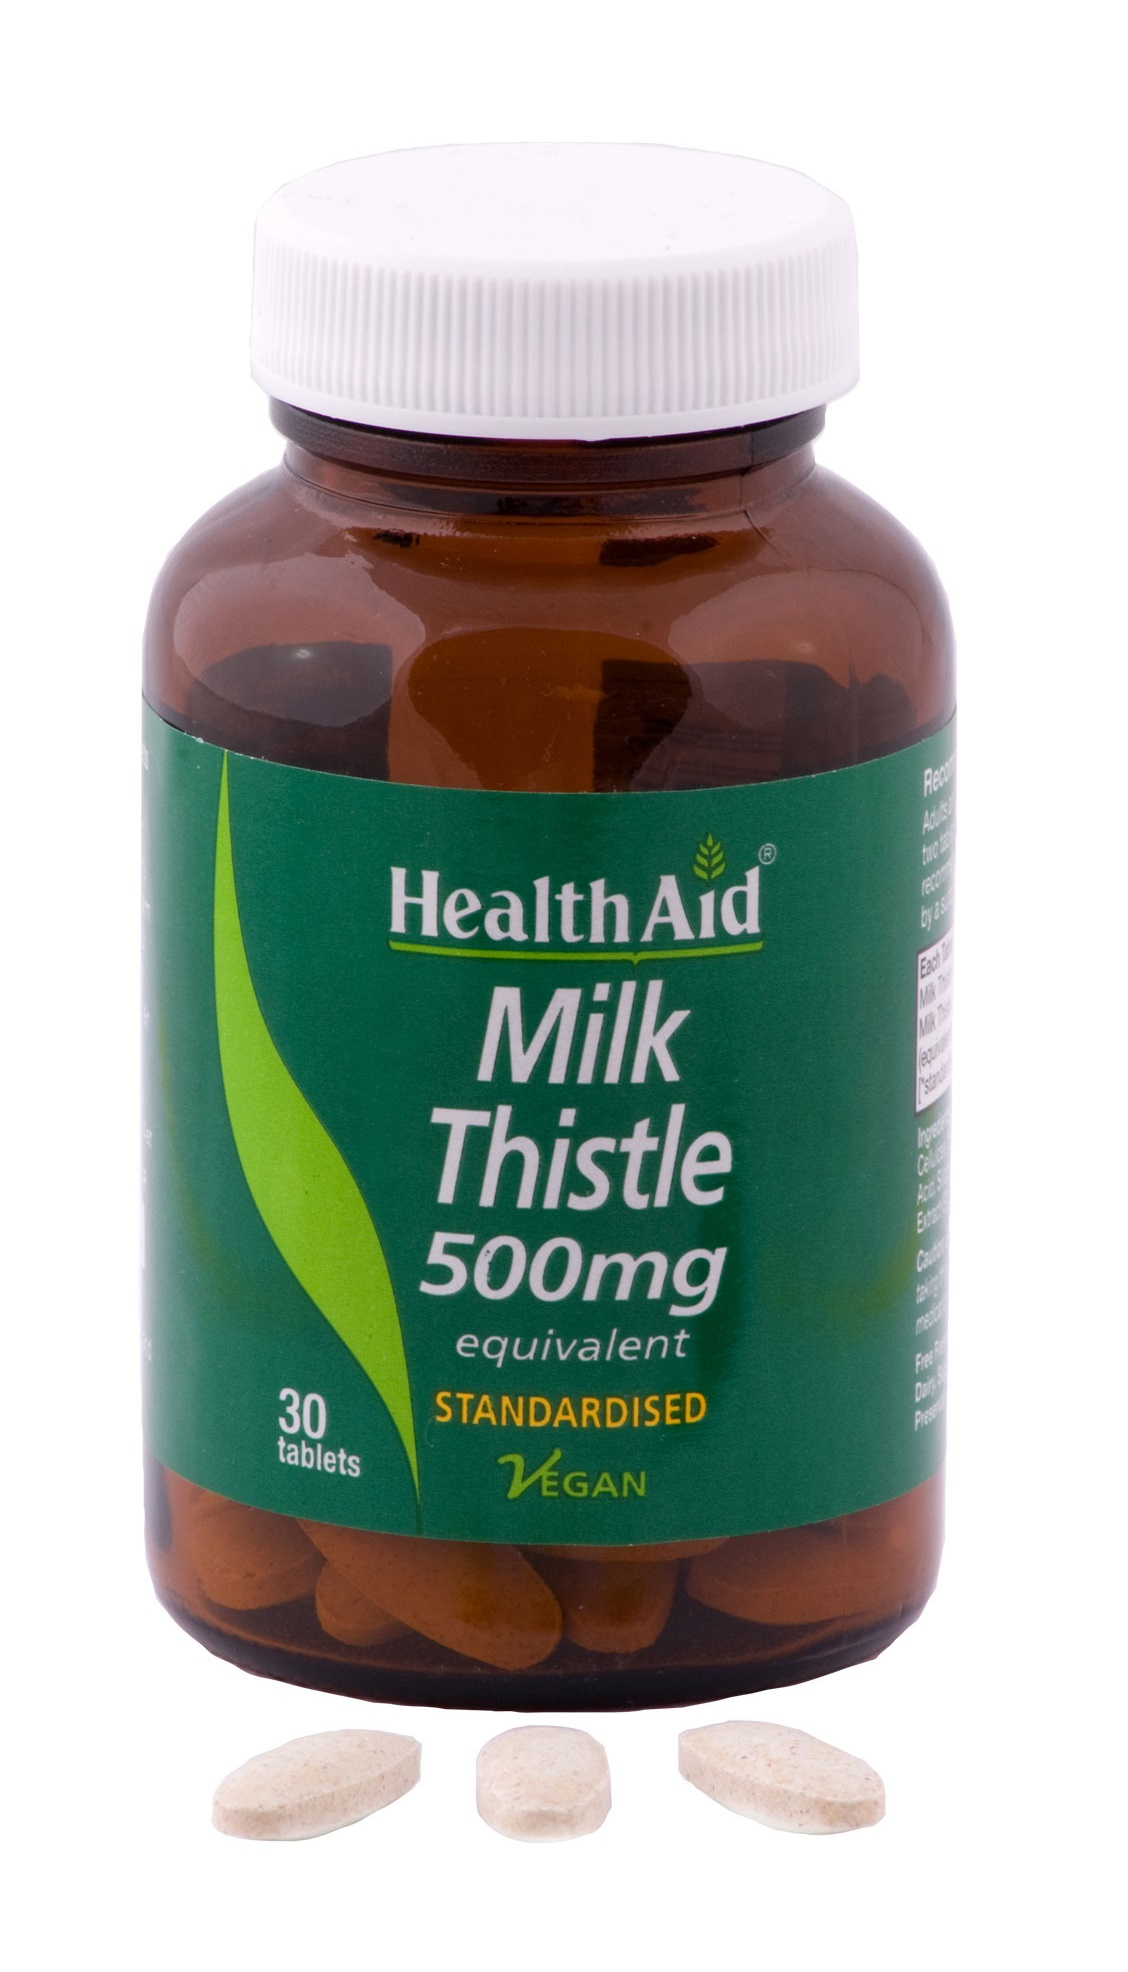 HealthAid Milk Thistle 500mg - Equivalent - 30 Tablets  available at Nykaa for Rs.964